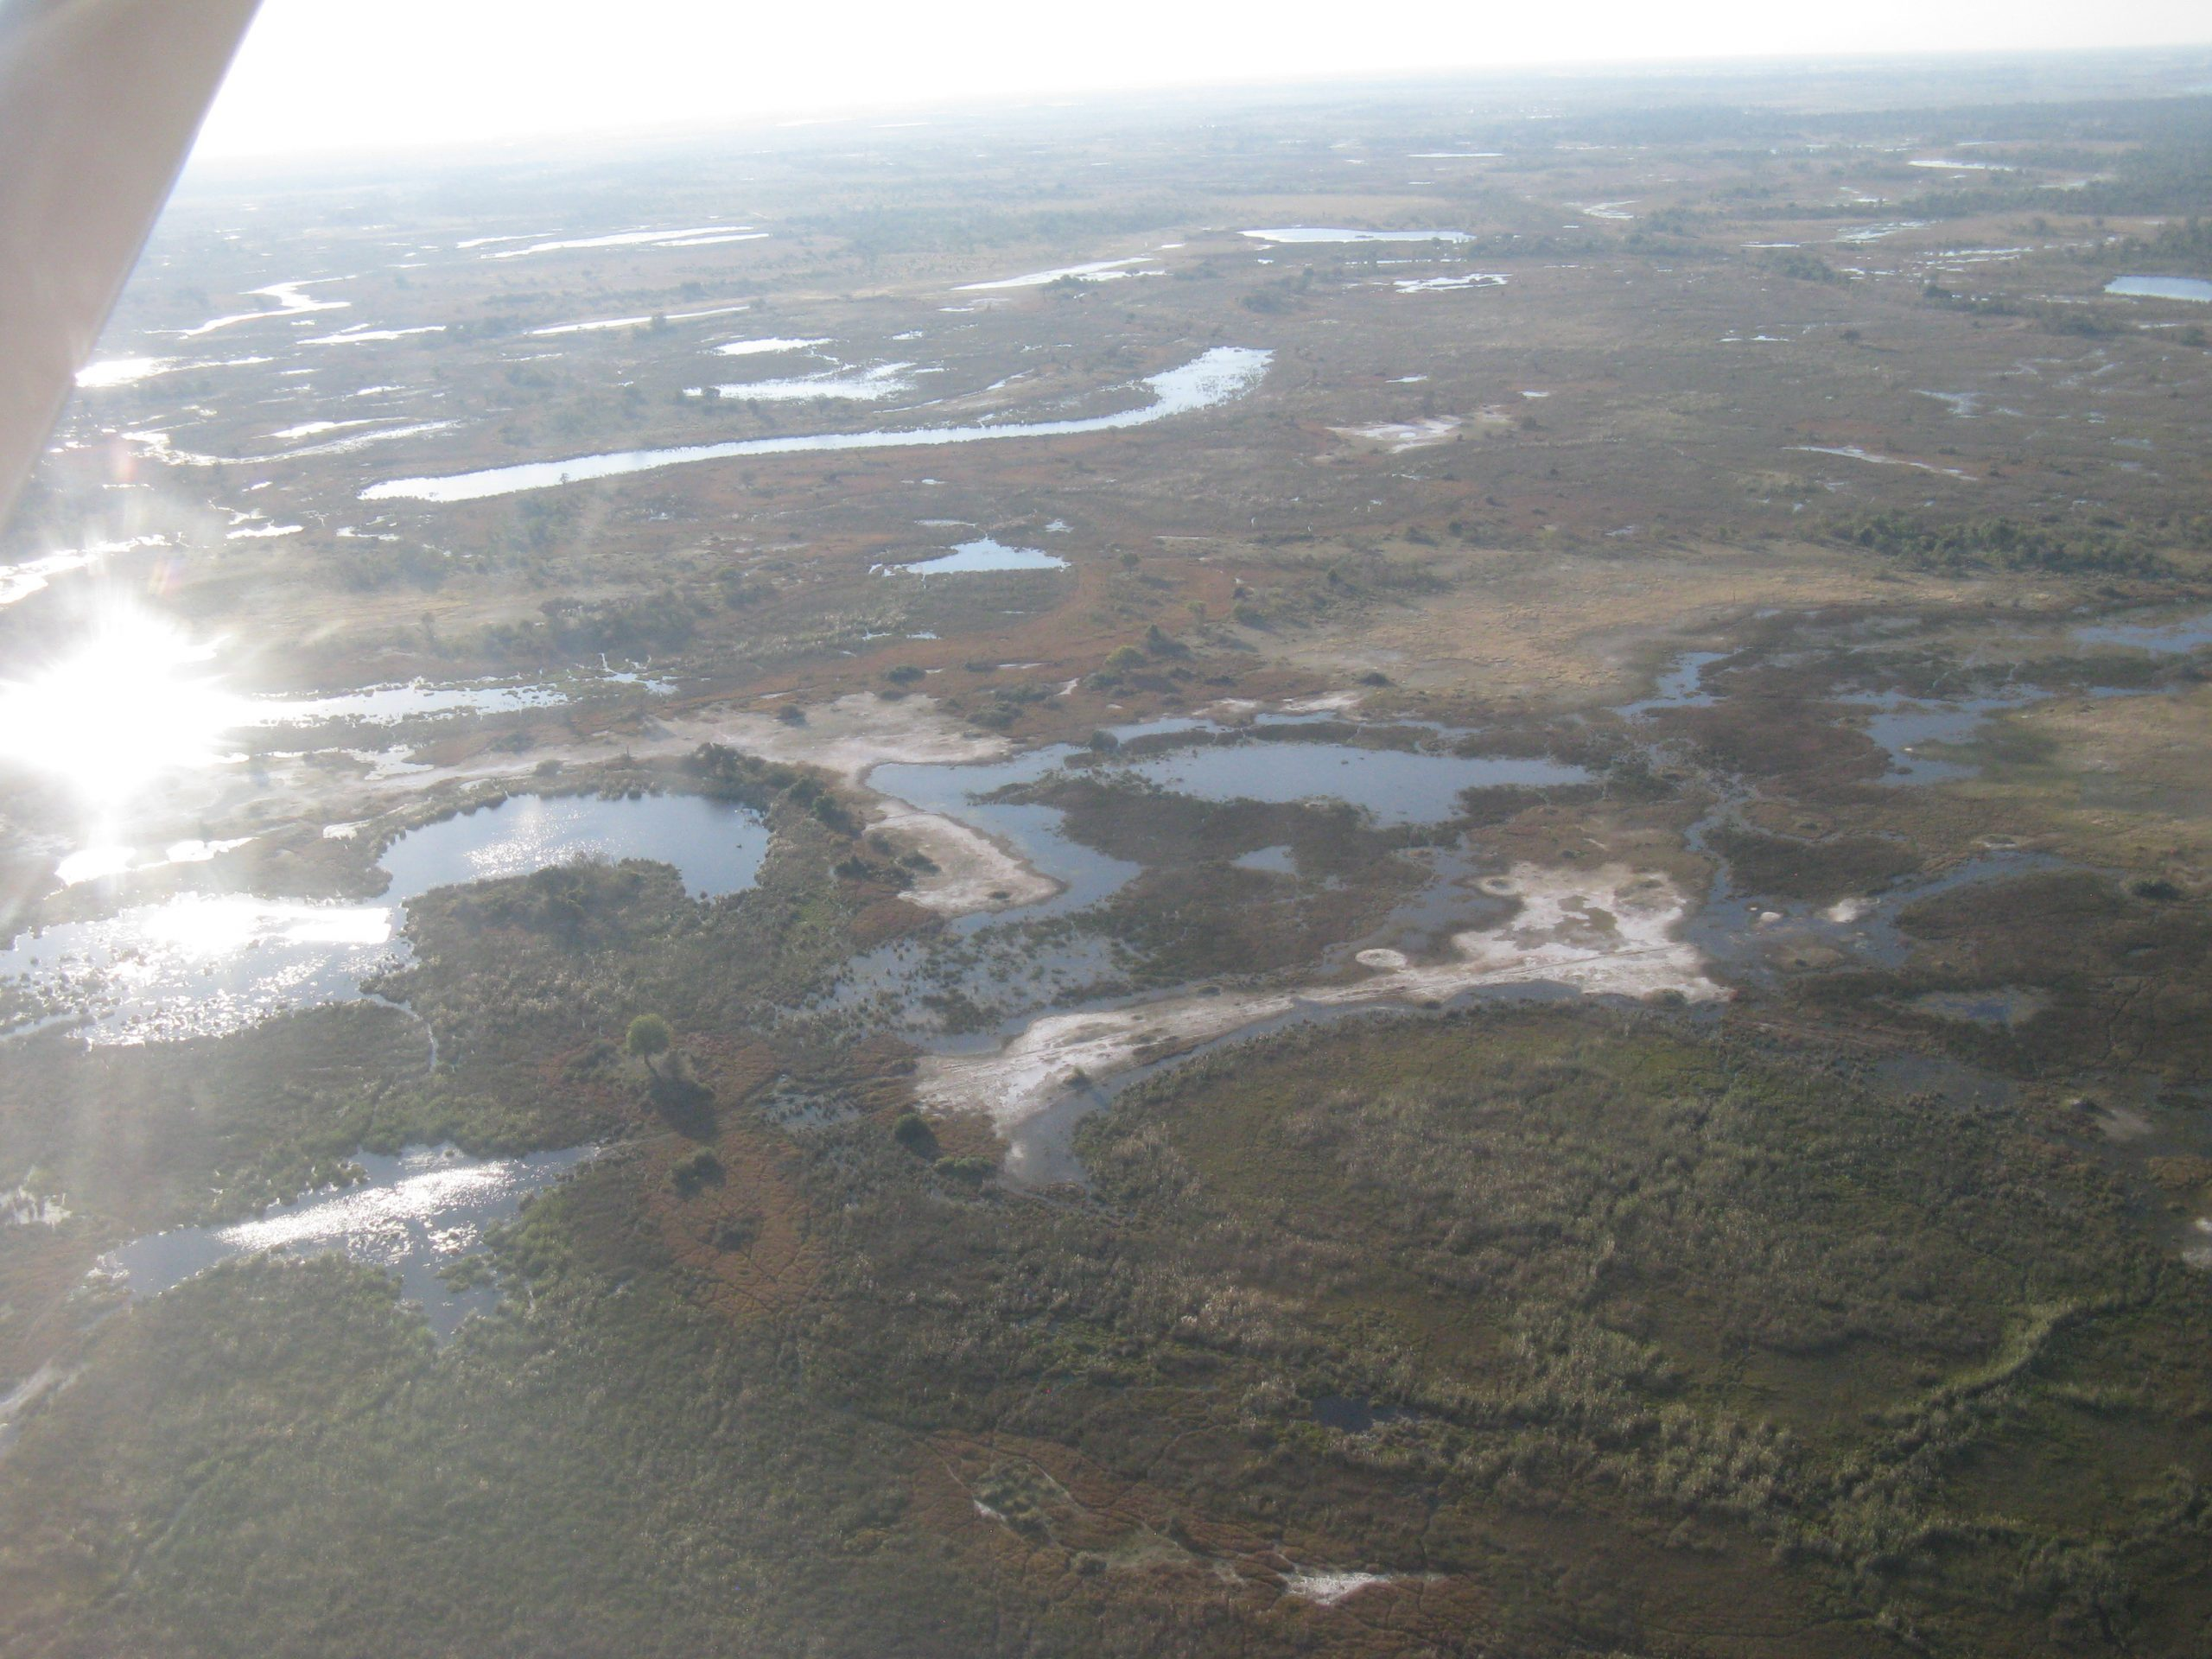 View of Okavango Delta from plane